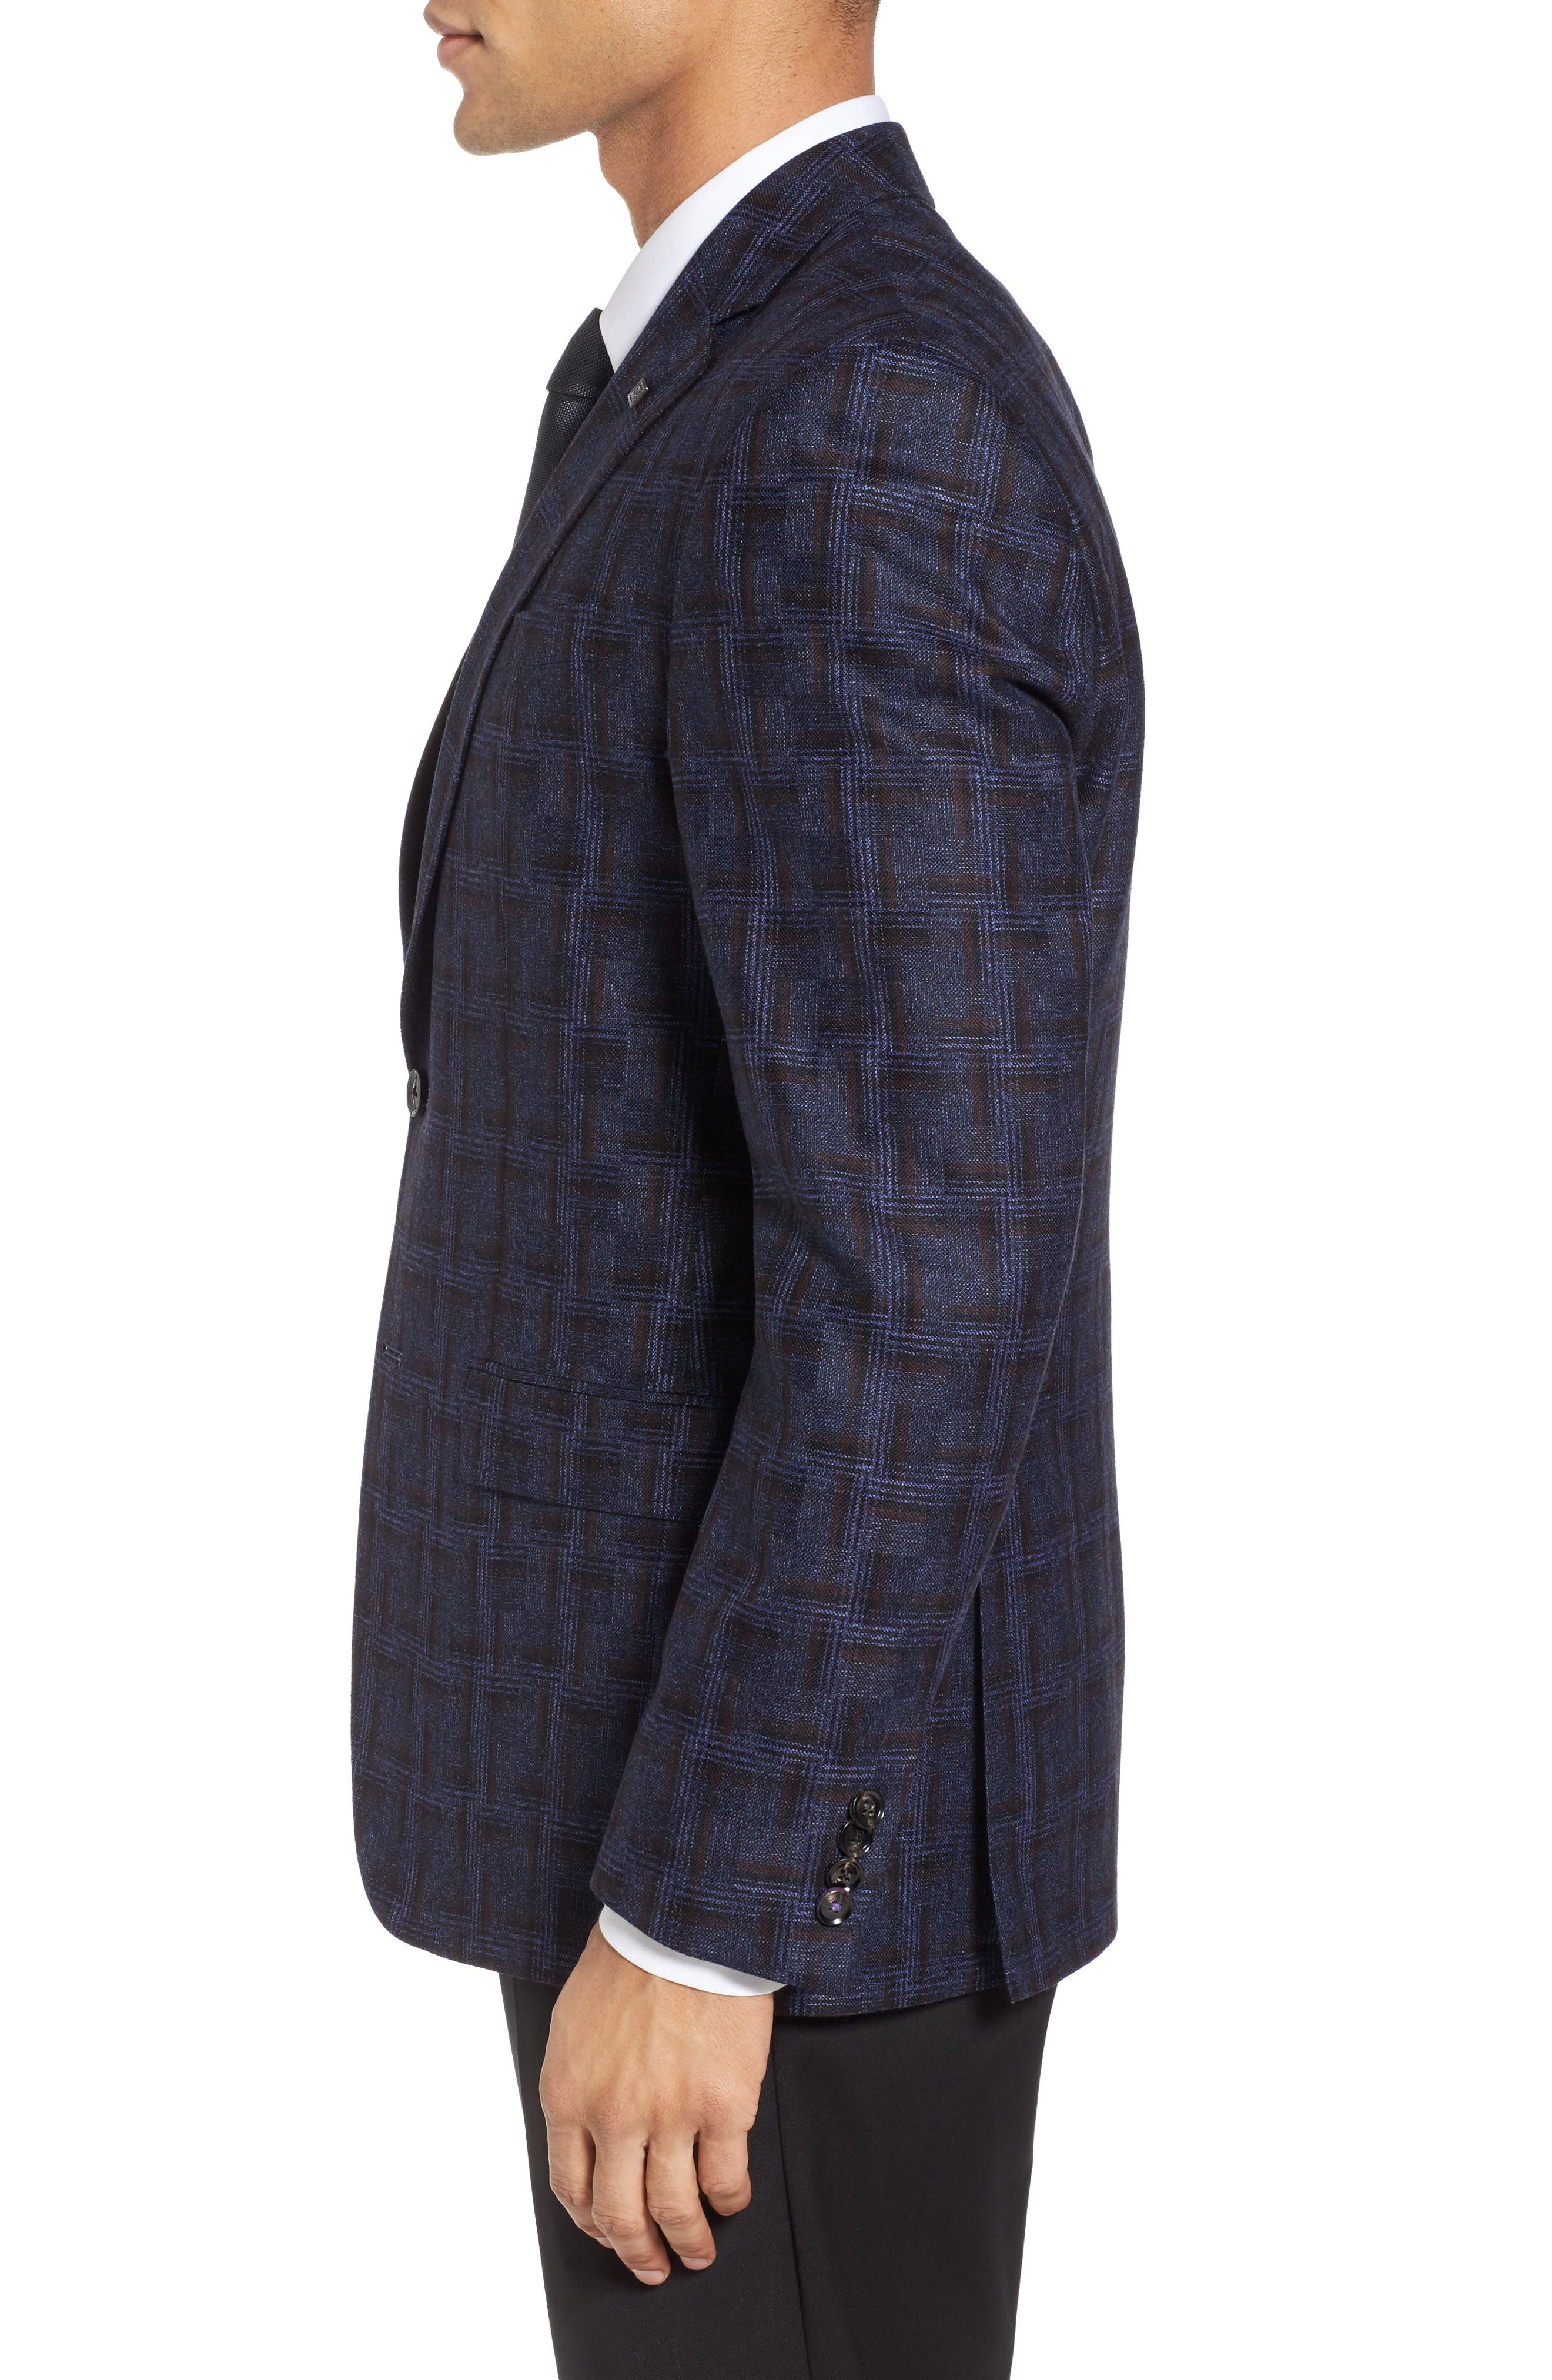 Jay Trim Fit Plaid Wool Sport Coat,                             Alternate thumbnail 3, color,